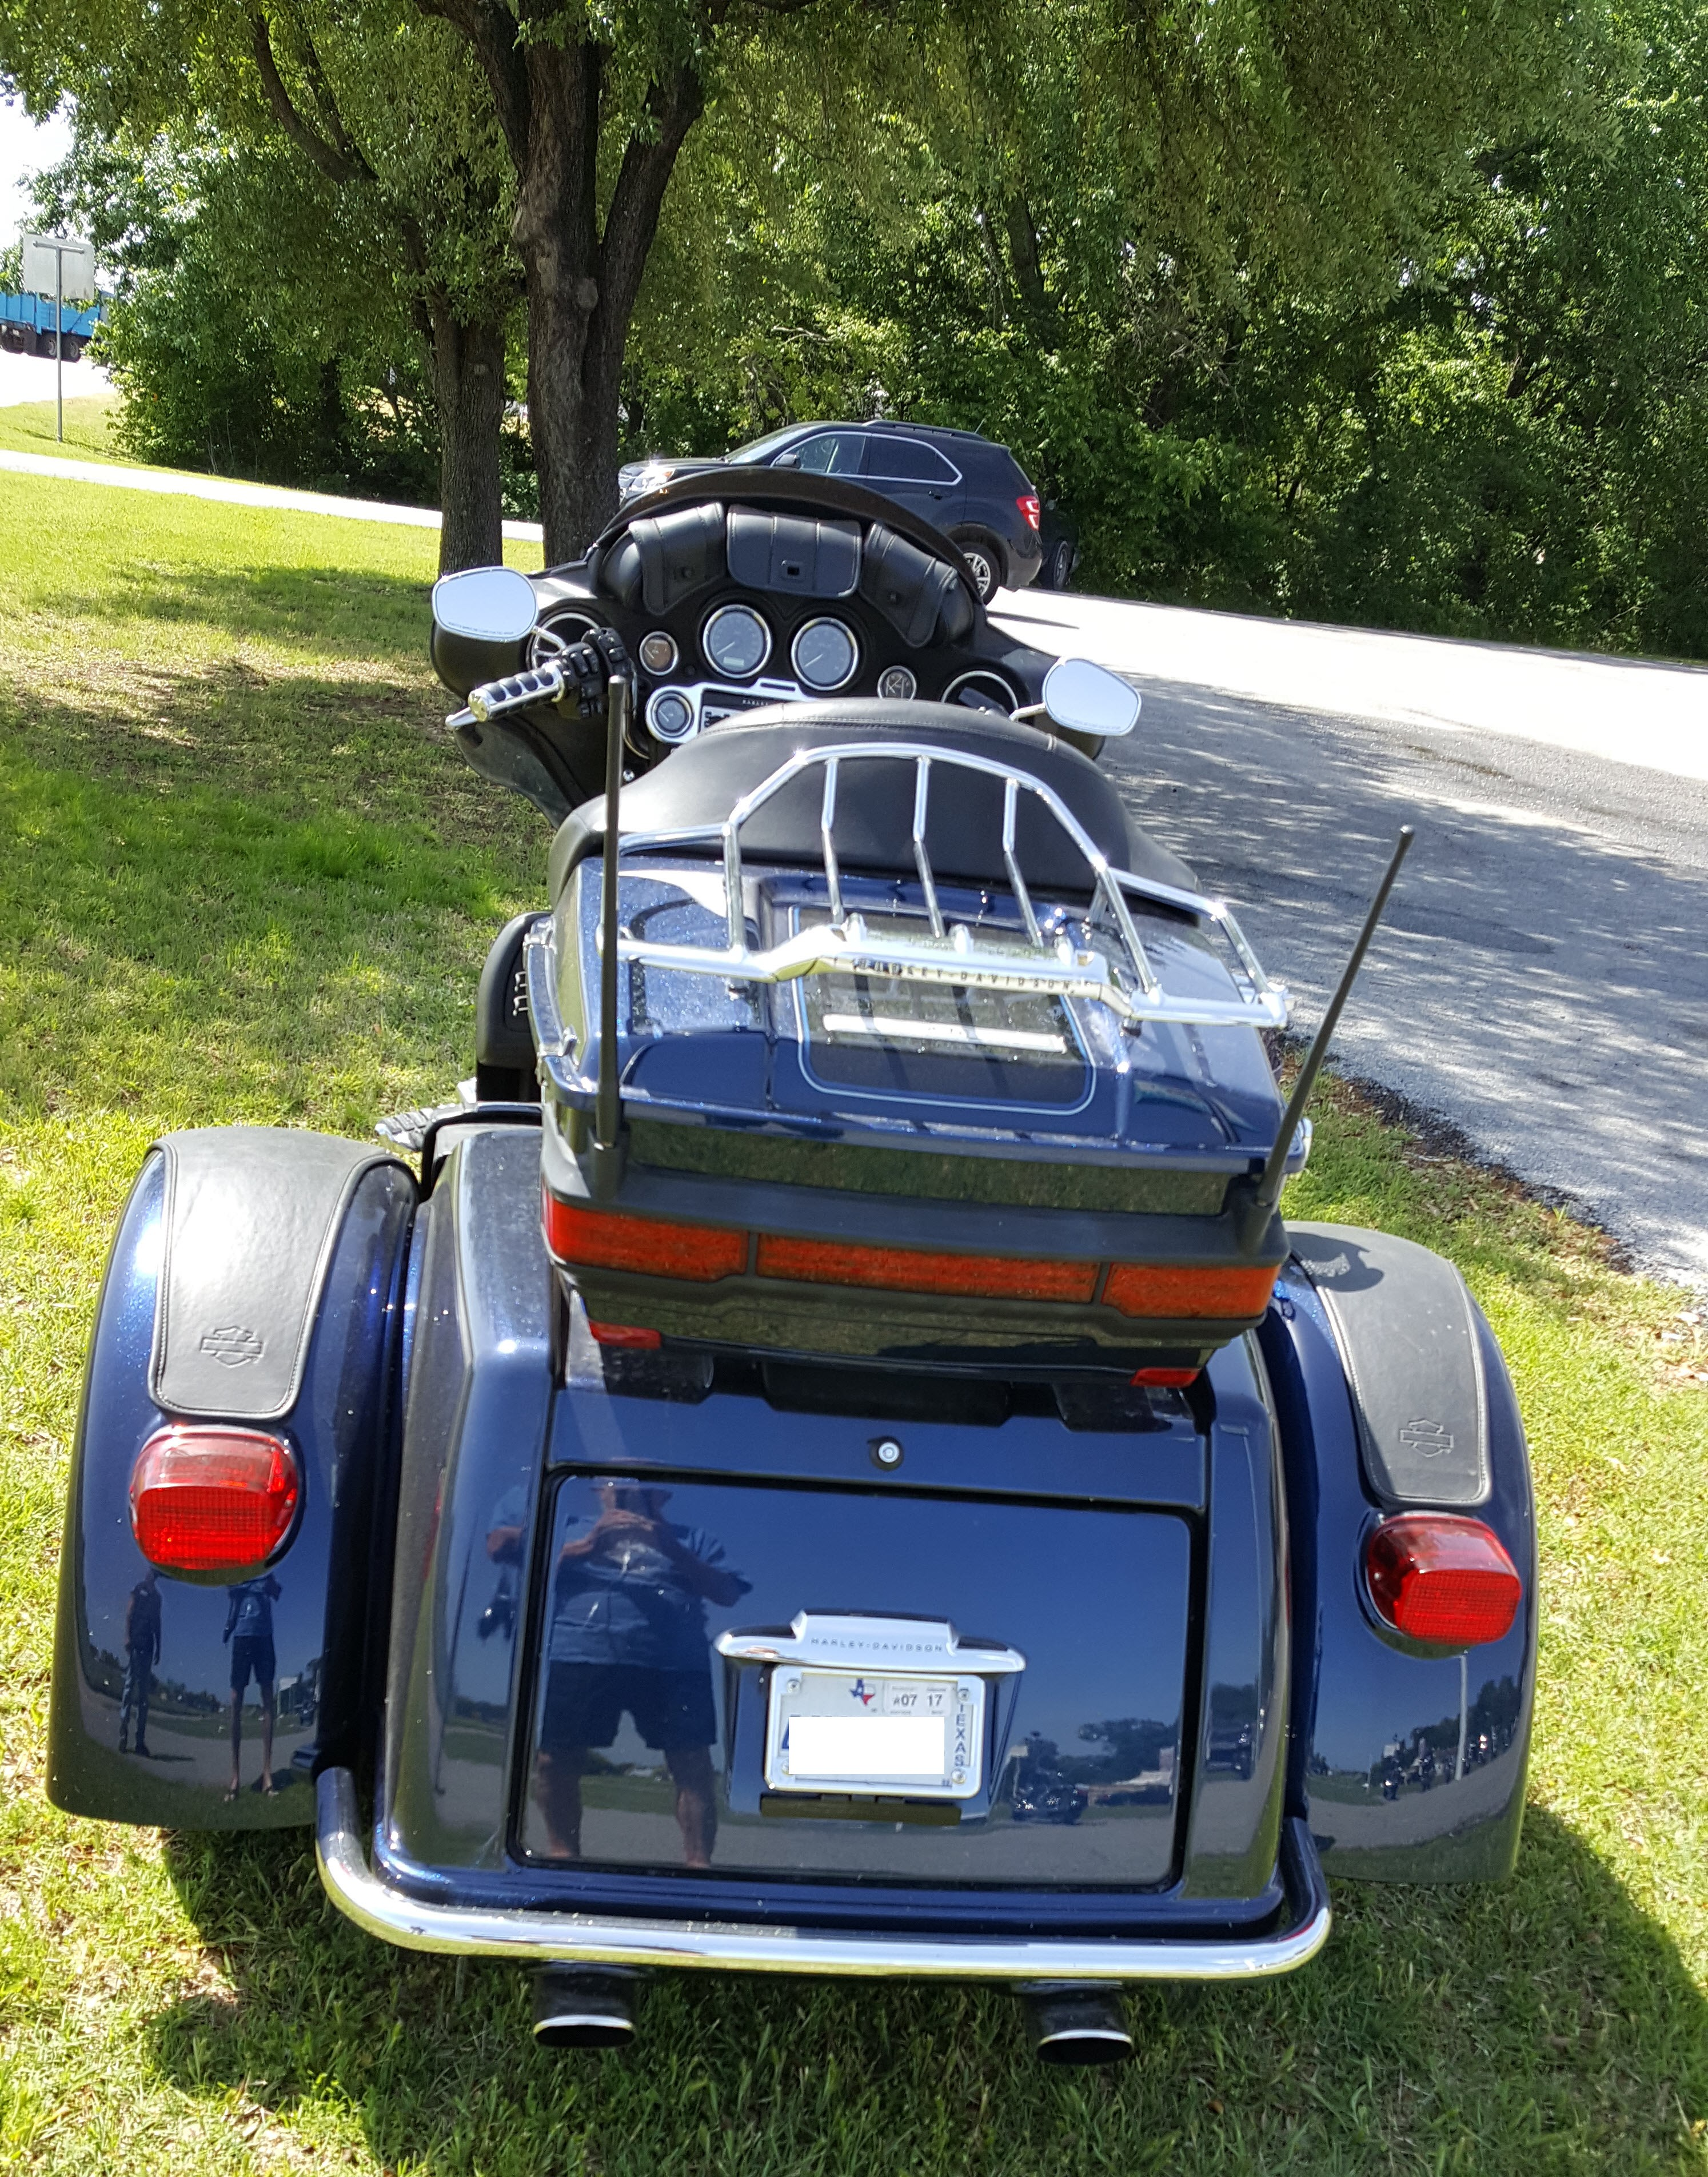 Harley Davidson Trike For Sale Texas New Car Specs And Price 2019 2020 2012 Wiring Diagram Flhtcutg Tri Glide